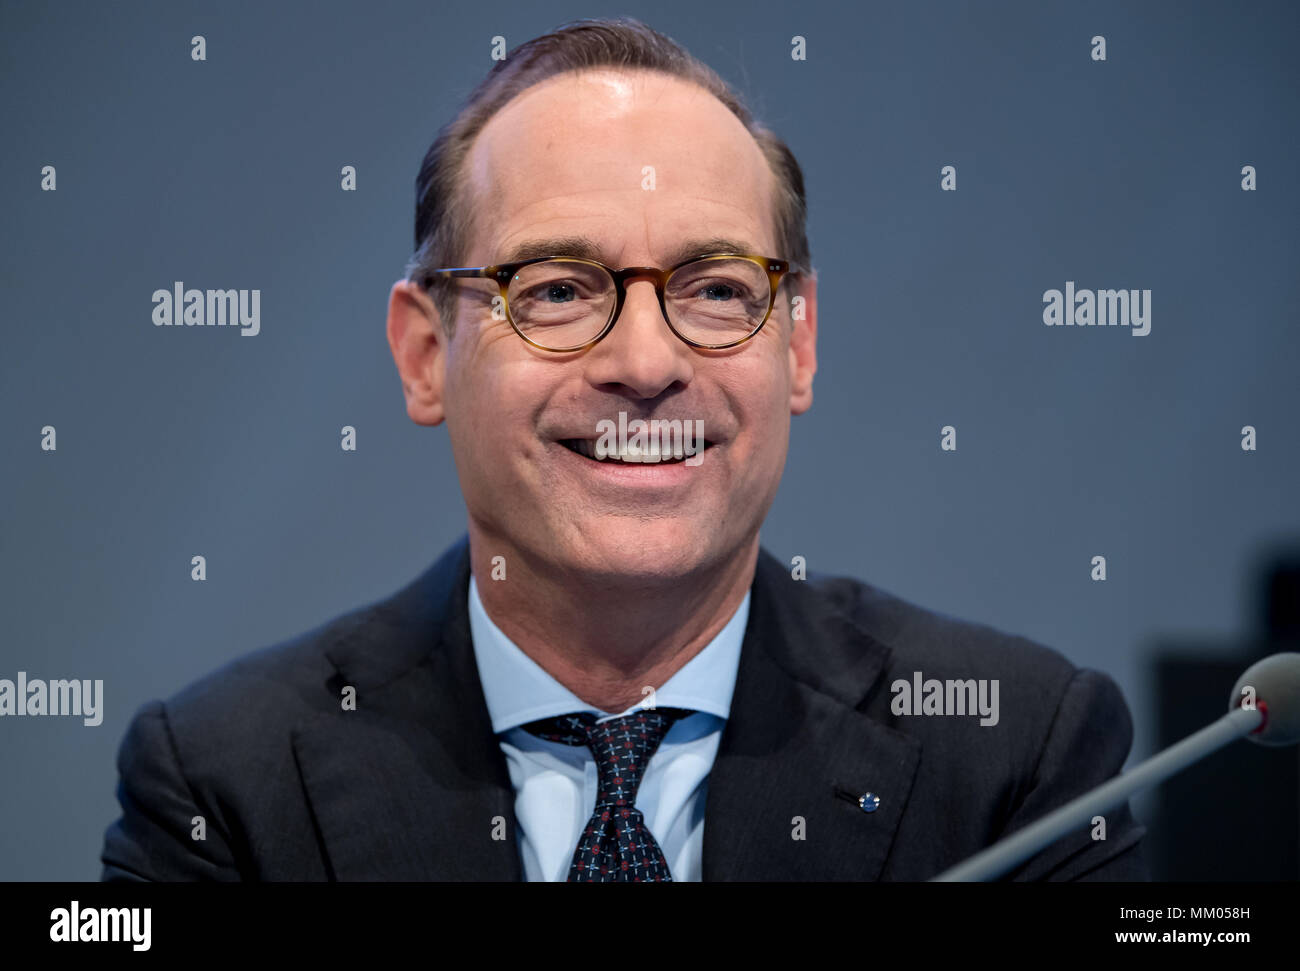 09 May 2018, Germany, Munich: CEO of the insurance company Allianz SE, Oliver Baete, sitting onstage before the begin of the annual general meeting of the insurance company Allianz. Photo: Sven Hoppe/dpa Stock Photo